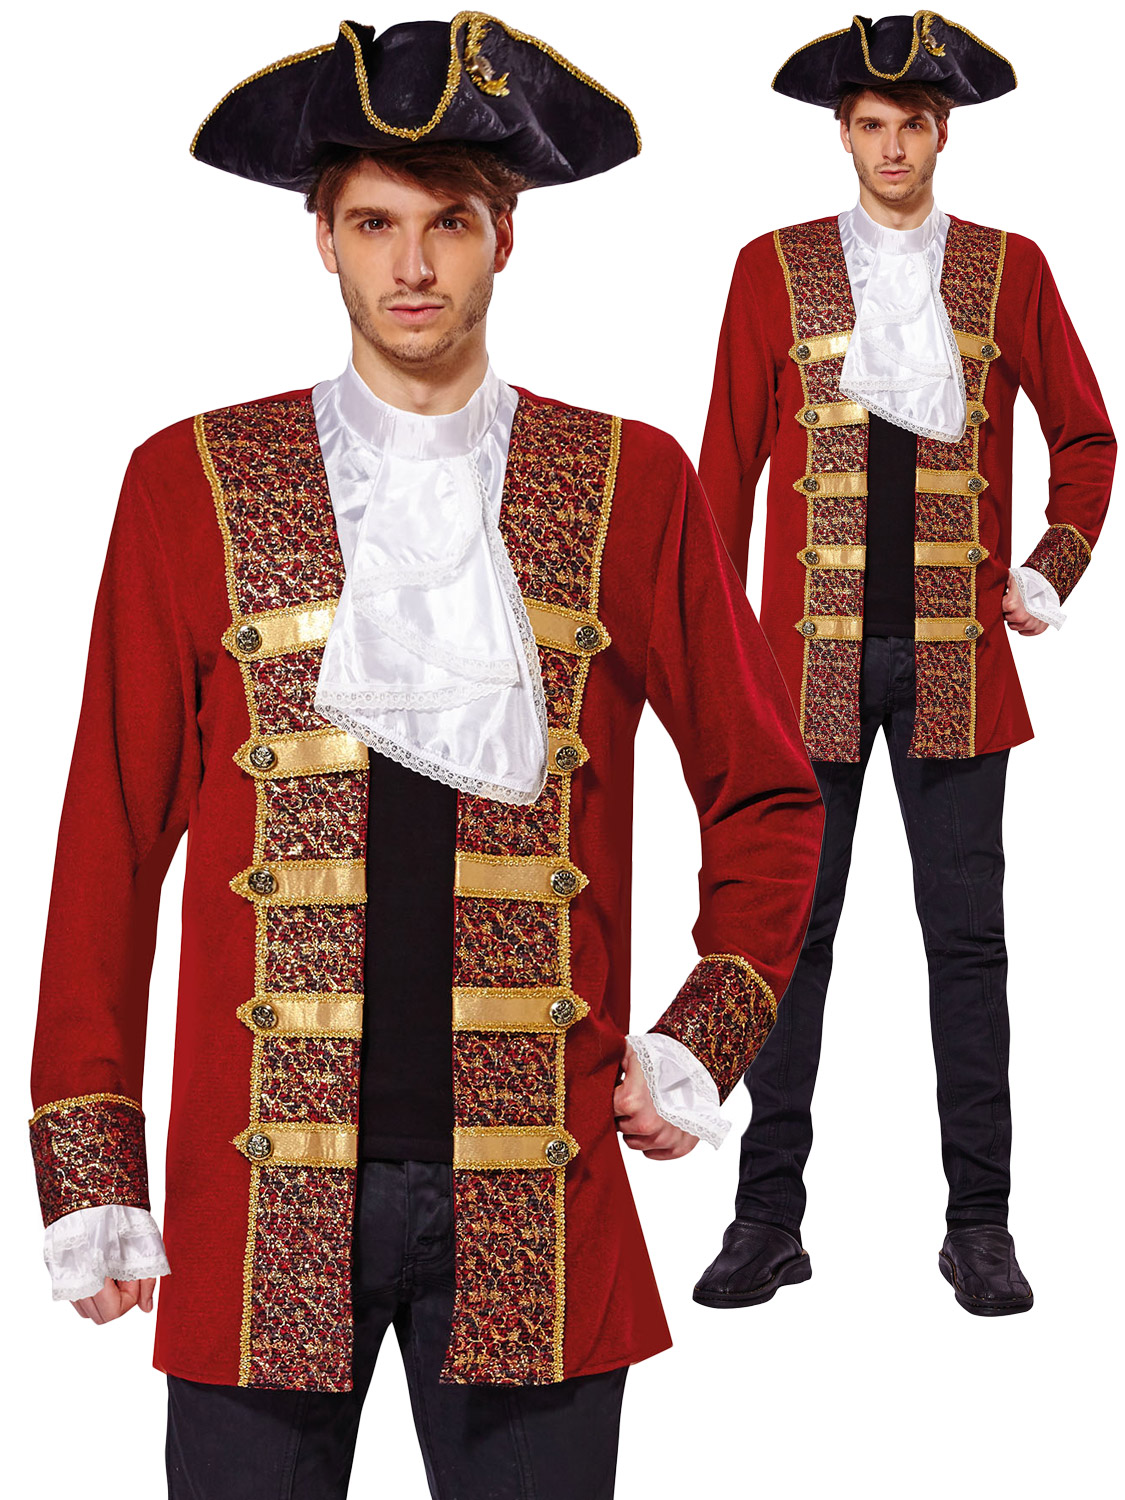 18c3a2c7 Details about Adult Deluxe Pirate Coat Mens Buccaneer Caribbean Fancy Dress  Costume Outfit